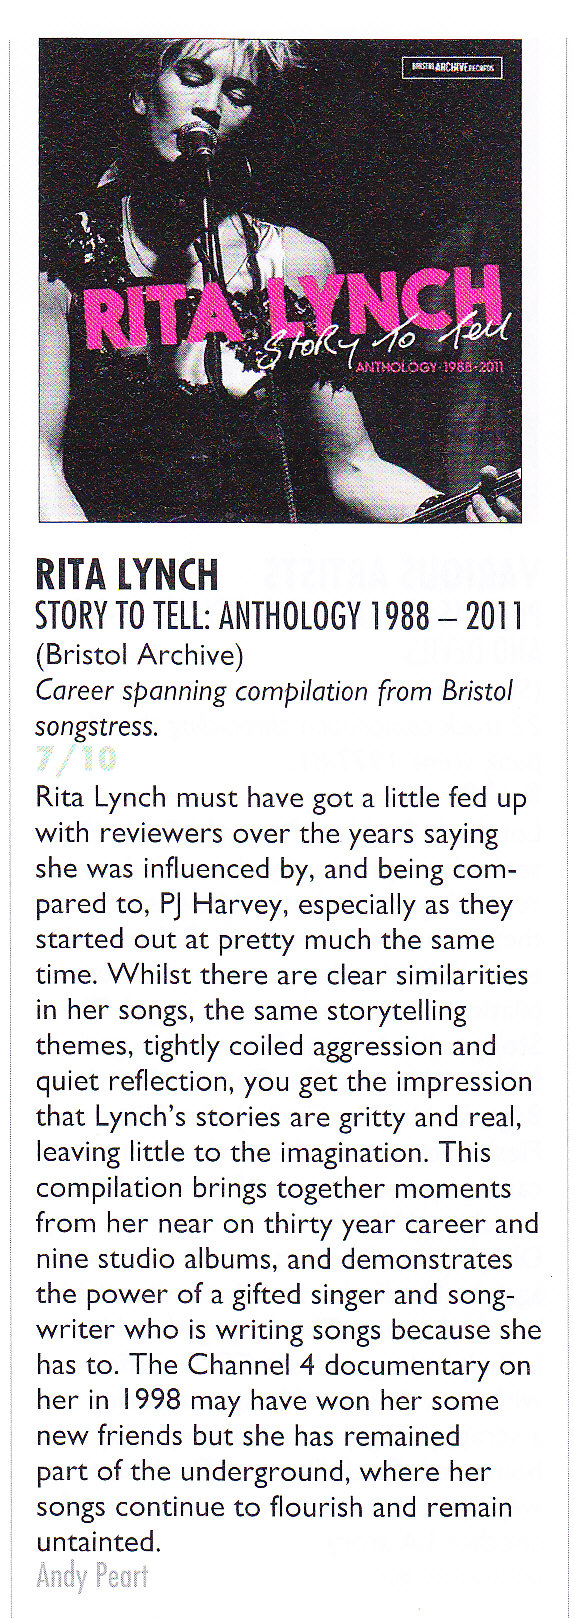 Rita Lynch vive le rock 7 out of 10 album review March 2016